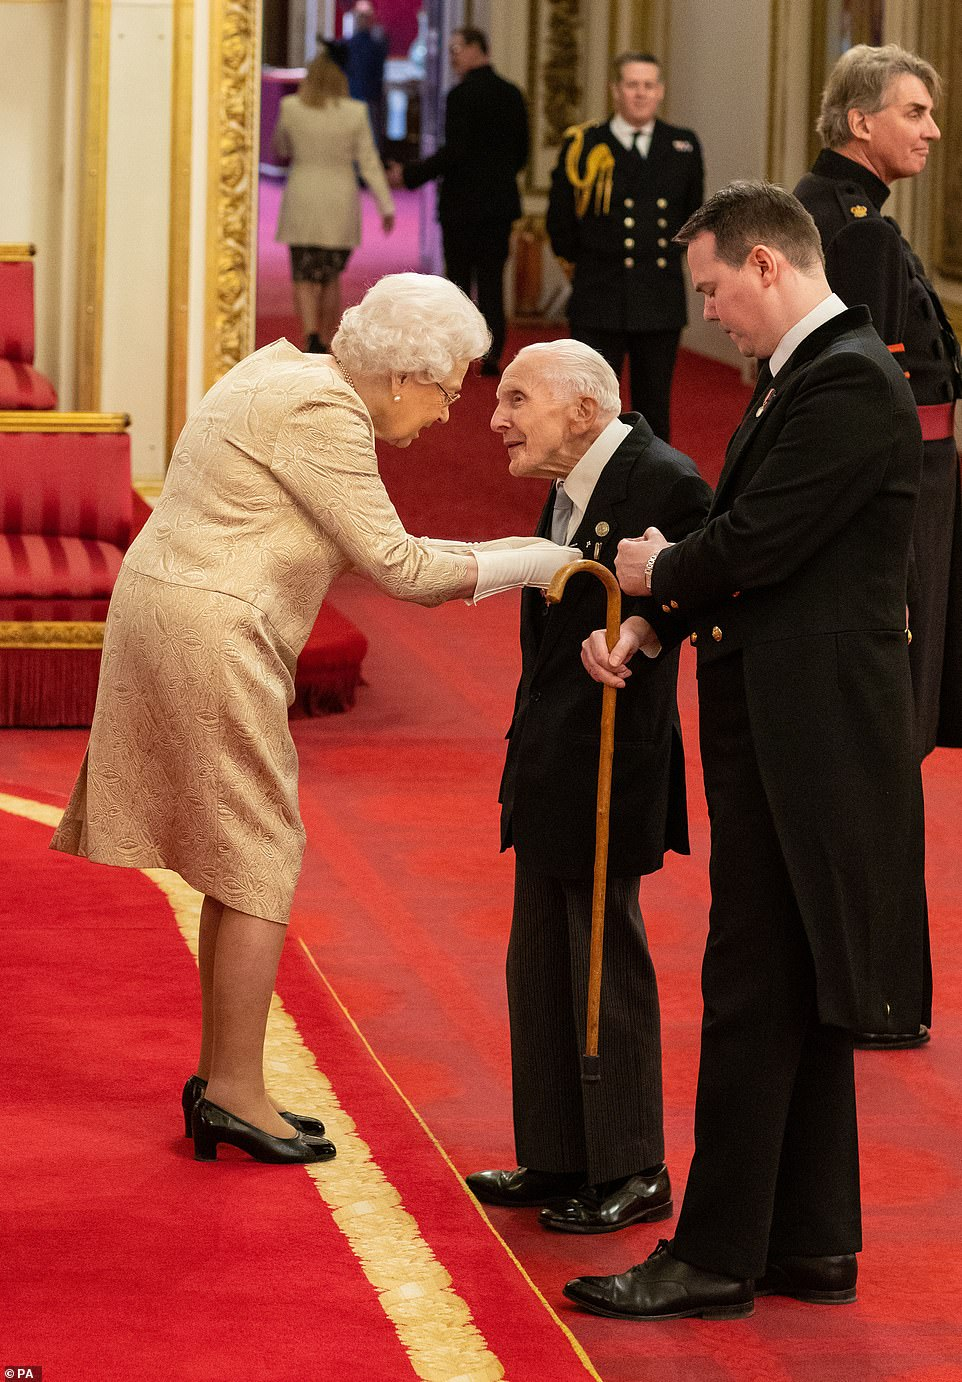 Queen dons gloves at an investiture for first time since 1954 amid coronavirus fear